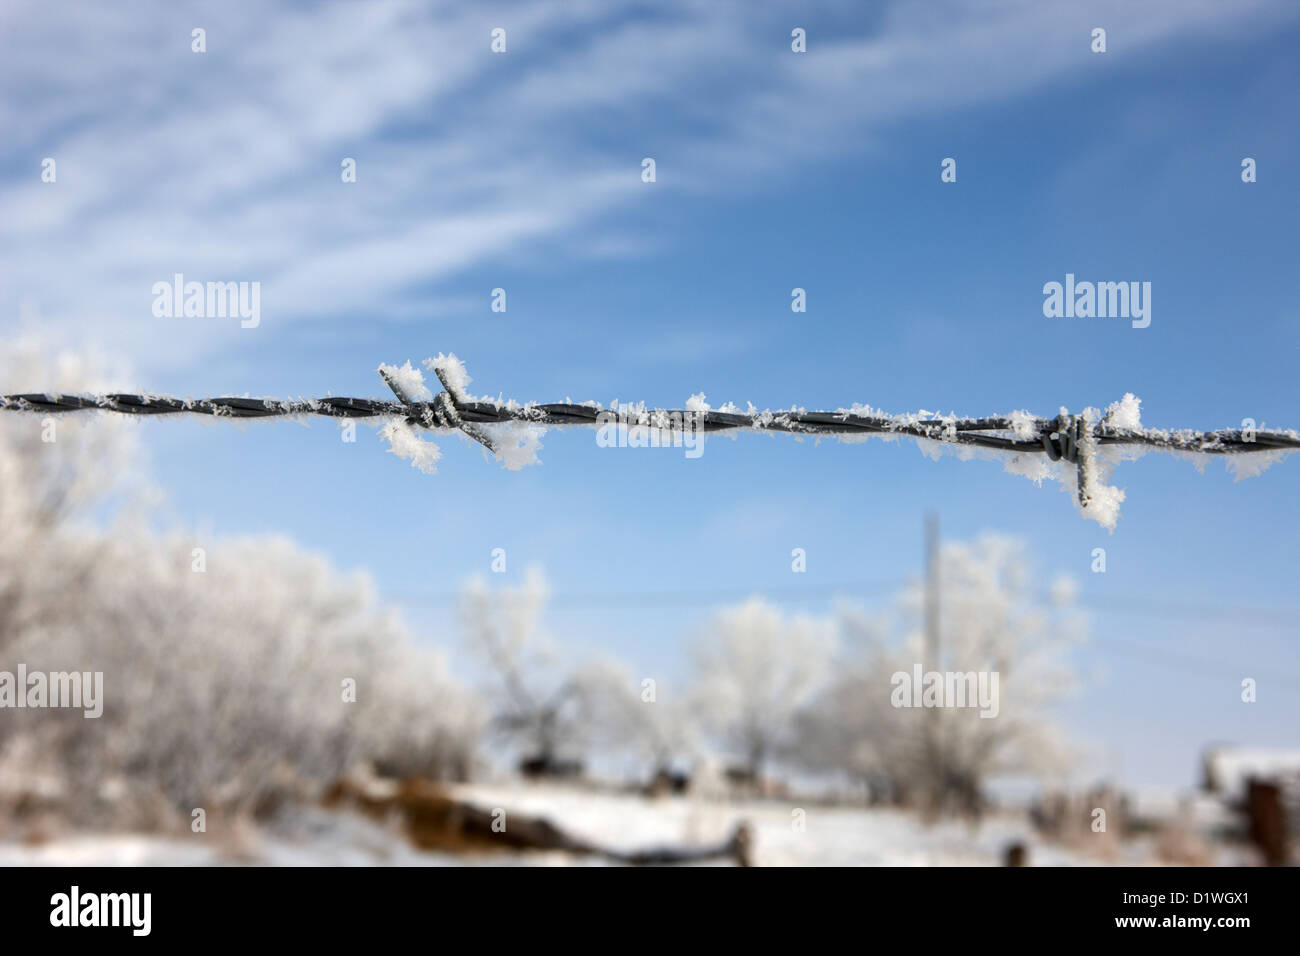 hoar frost on barbed wire fence on farmland in Forget Saskatchewan Canada - Stock Image